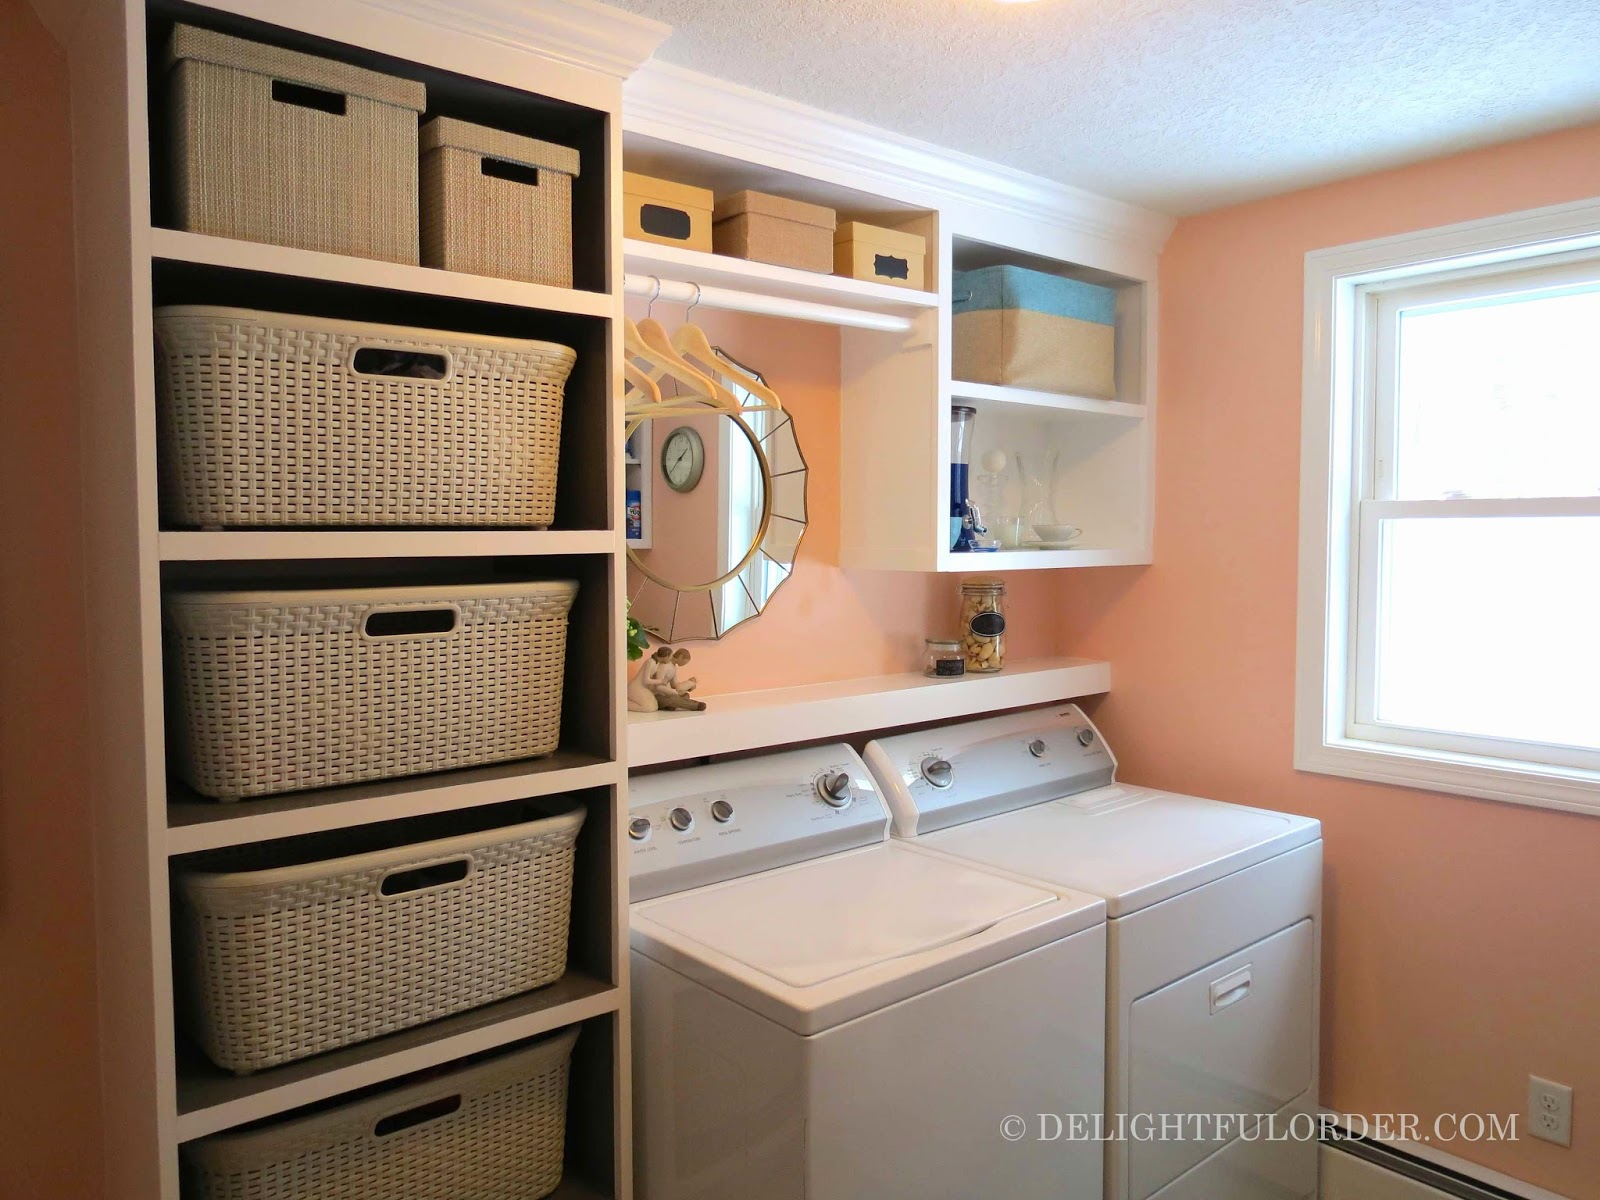 Delightful order laundry room craft room office all in Laundry room storage